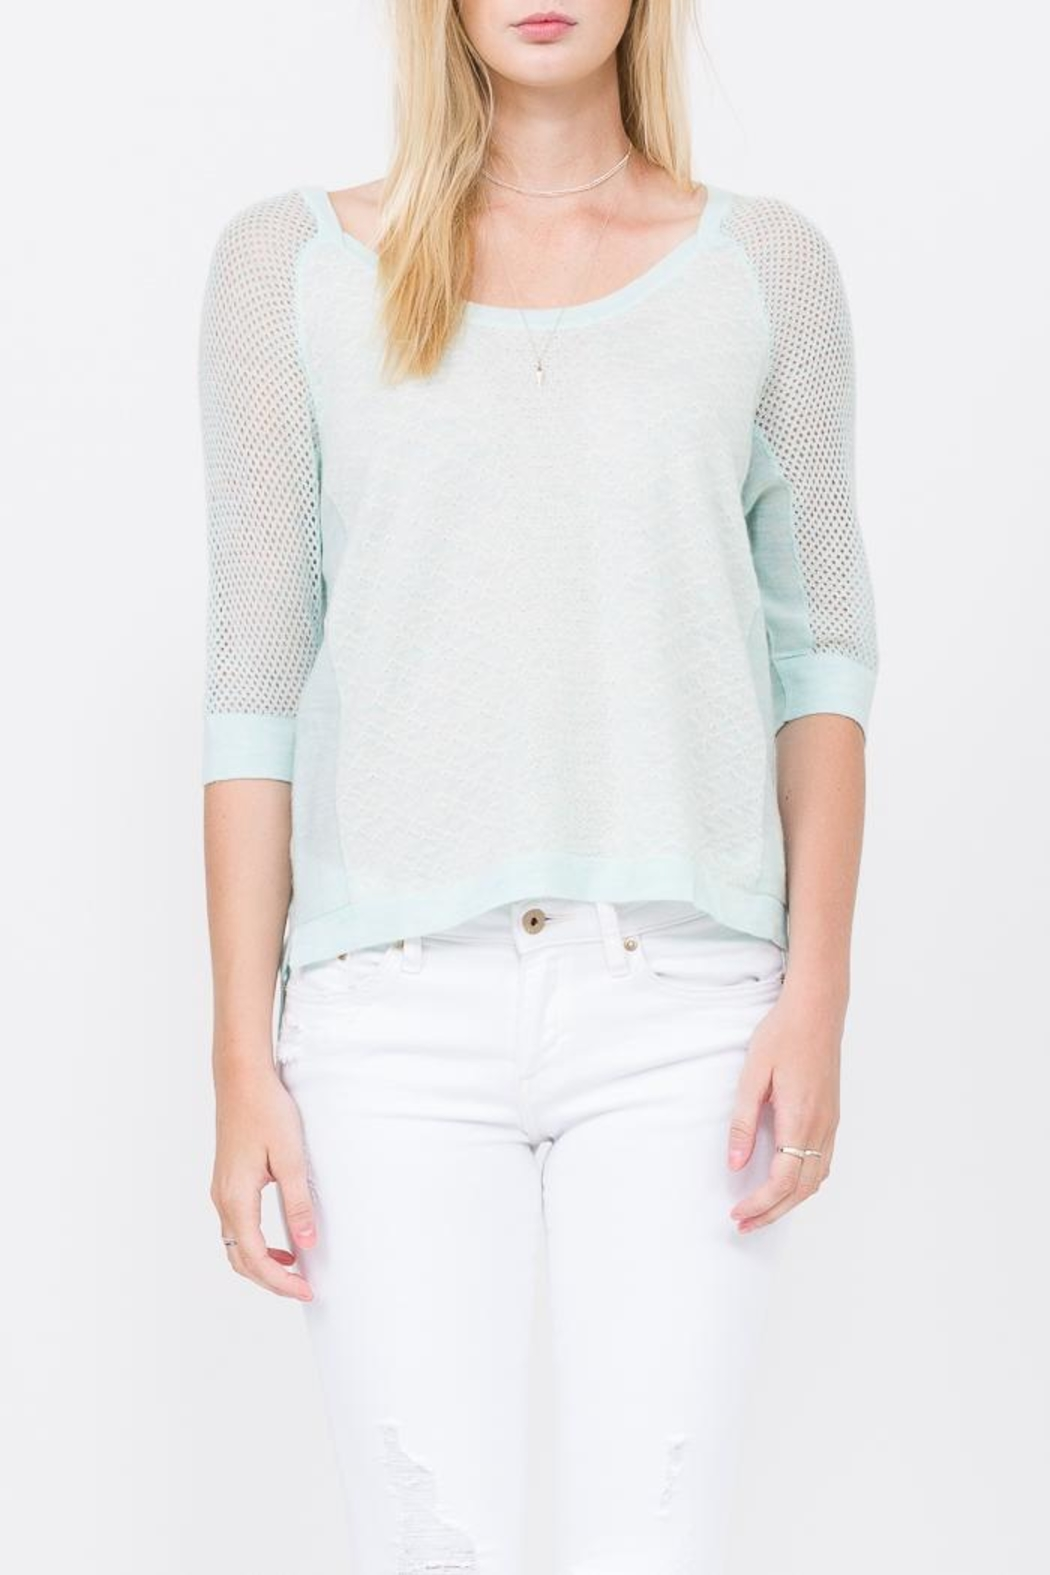 QUINN Grace Panaeled Sweater - Front Full Image